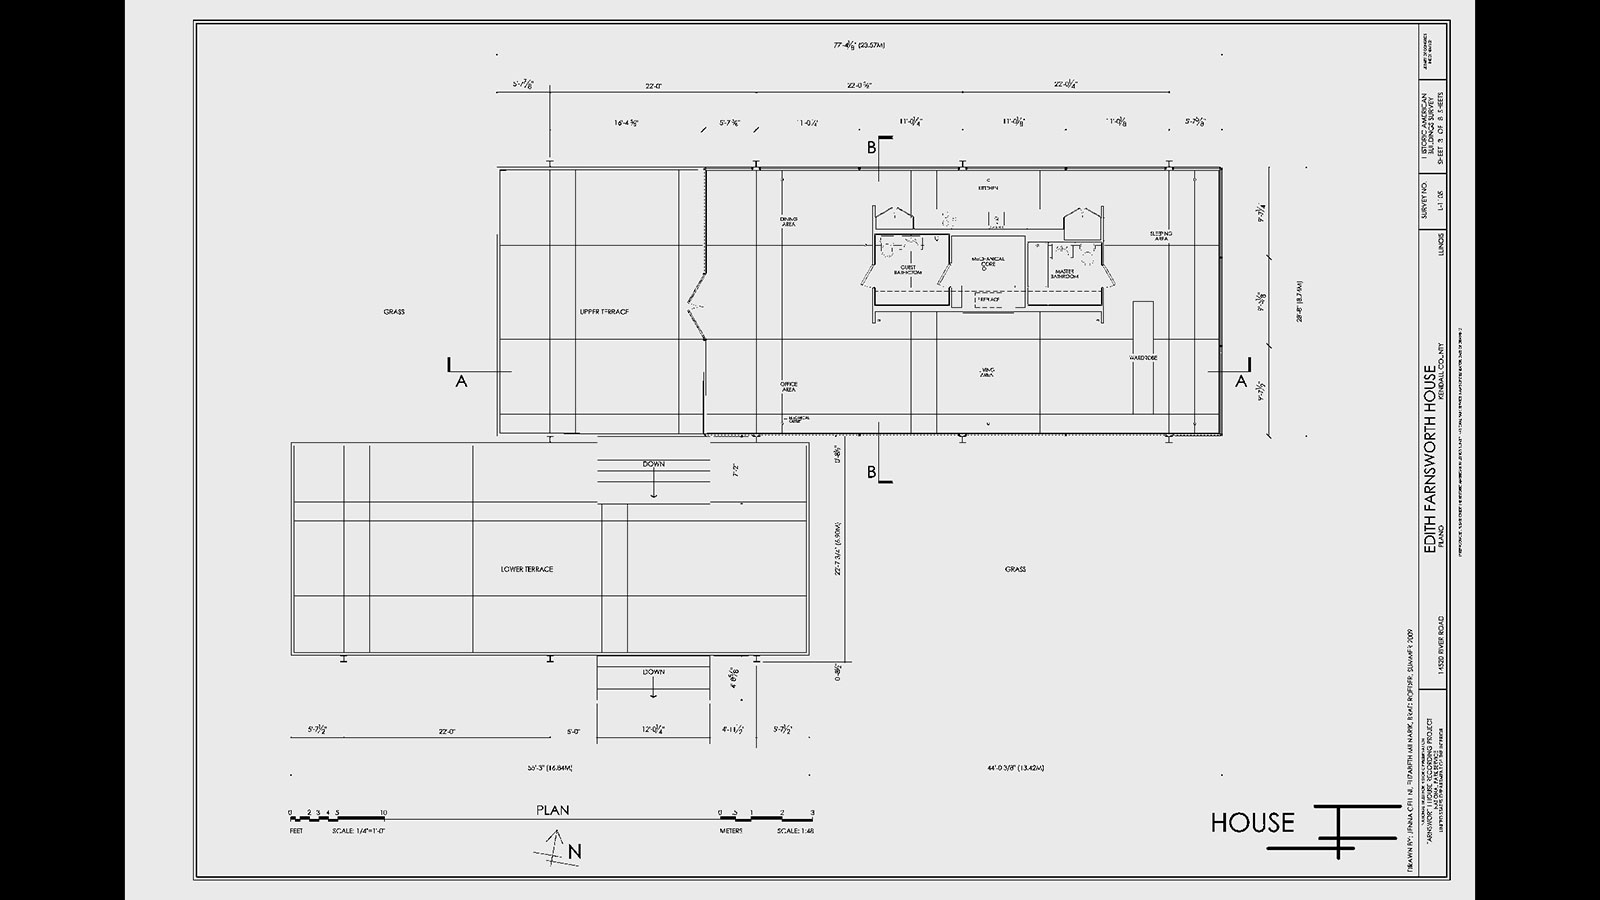 Villa Floor Plans The Farnsworth House Wttw Chicago Public Media